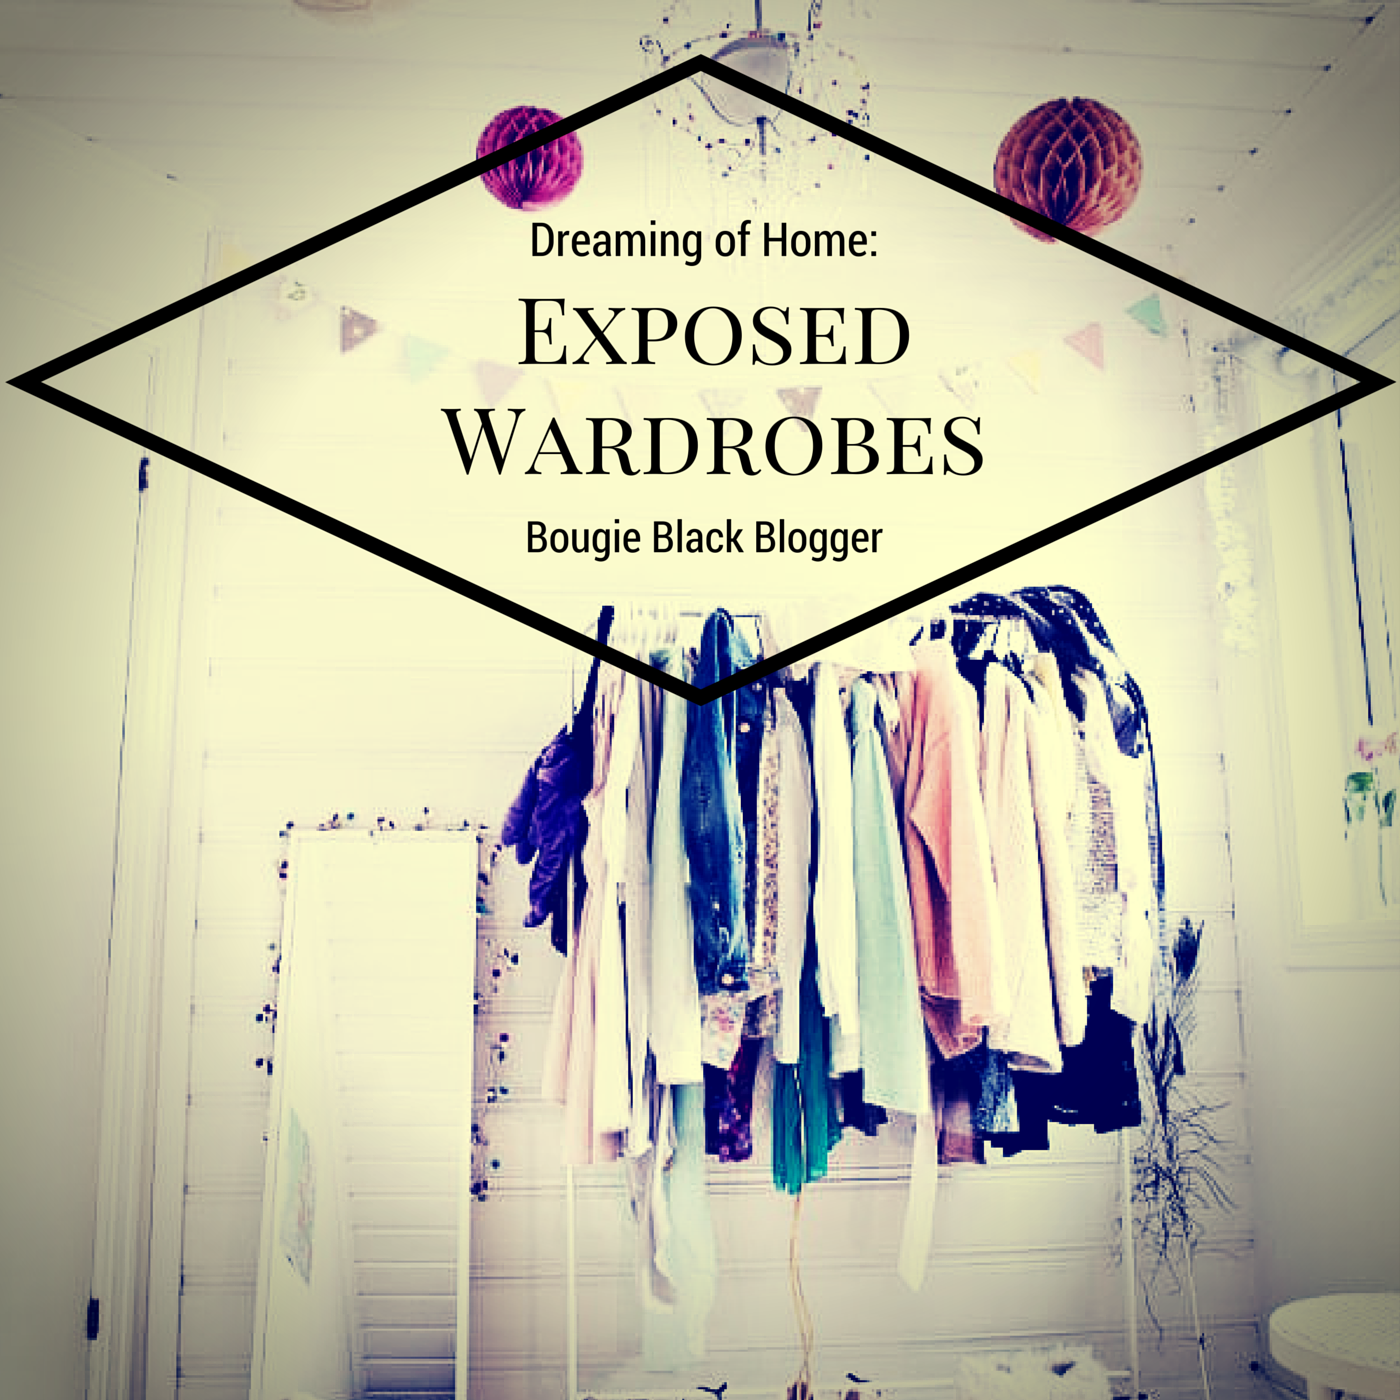 Dreaming Of Home: Exposed Wardrobe